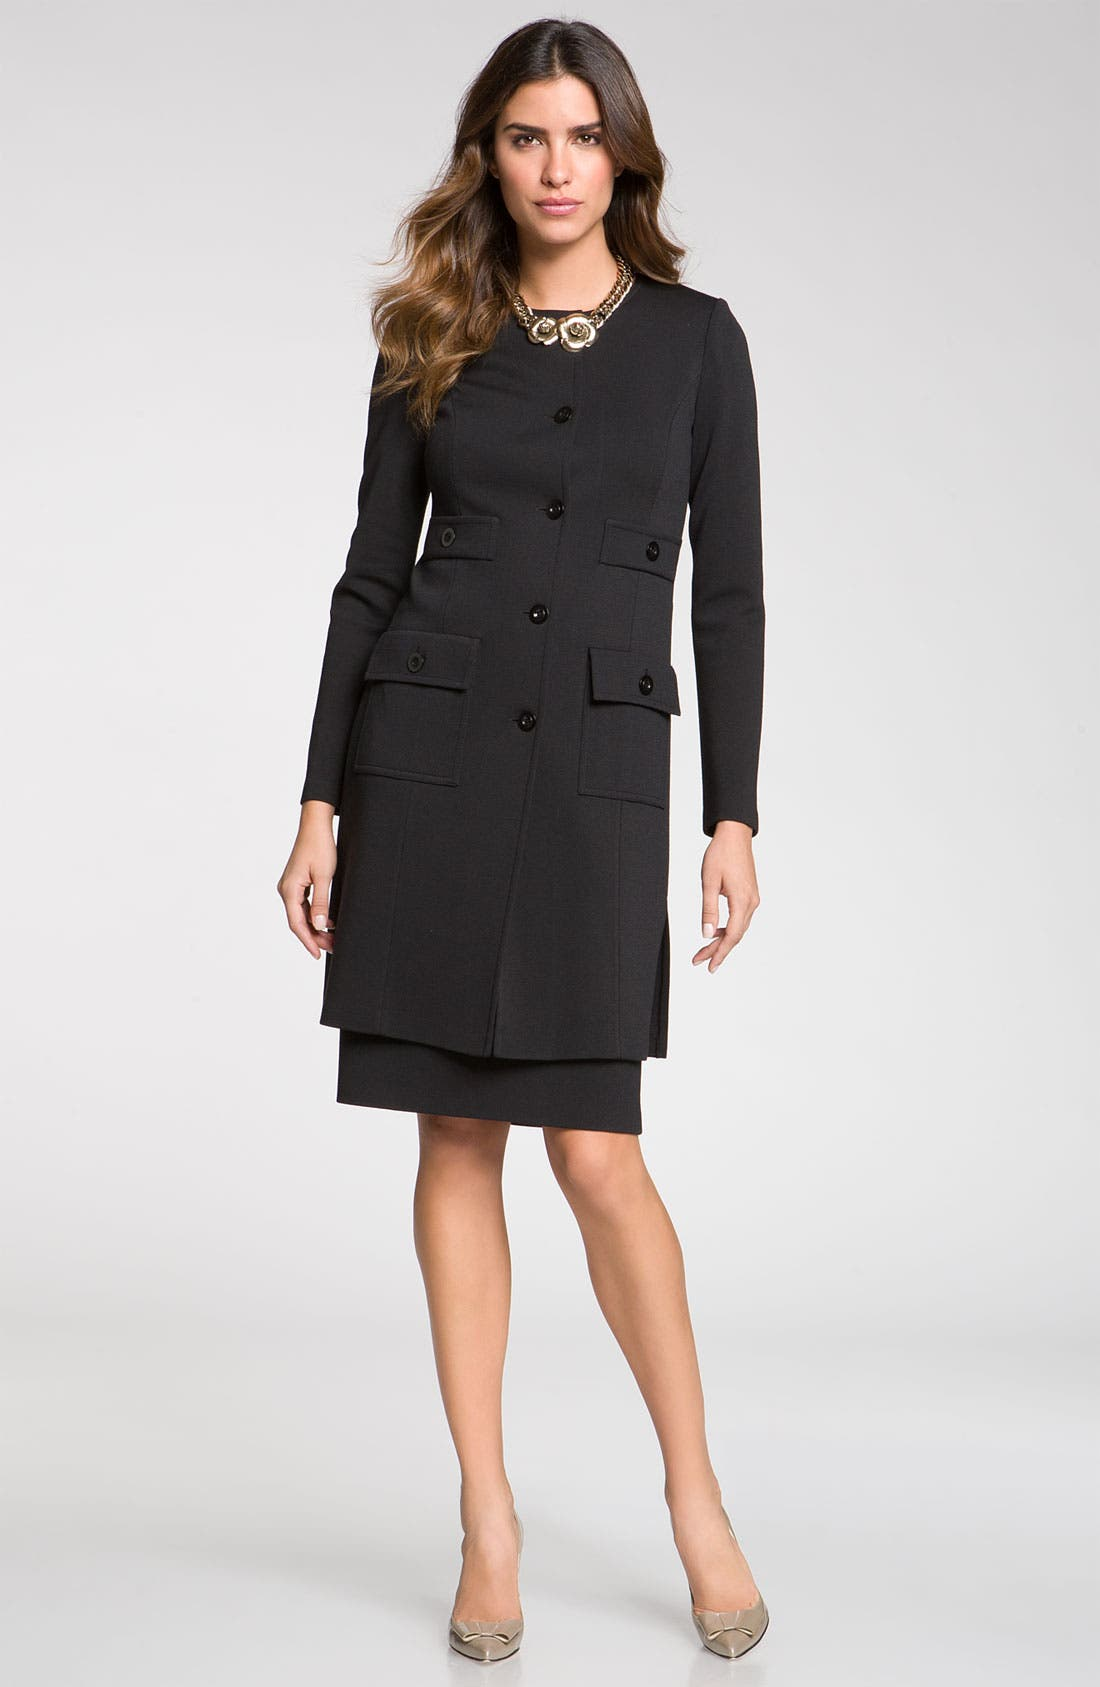 Alternate Image 1 Selected - St. John Collection Knit Jacket & Pencil Skirt